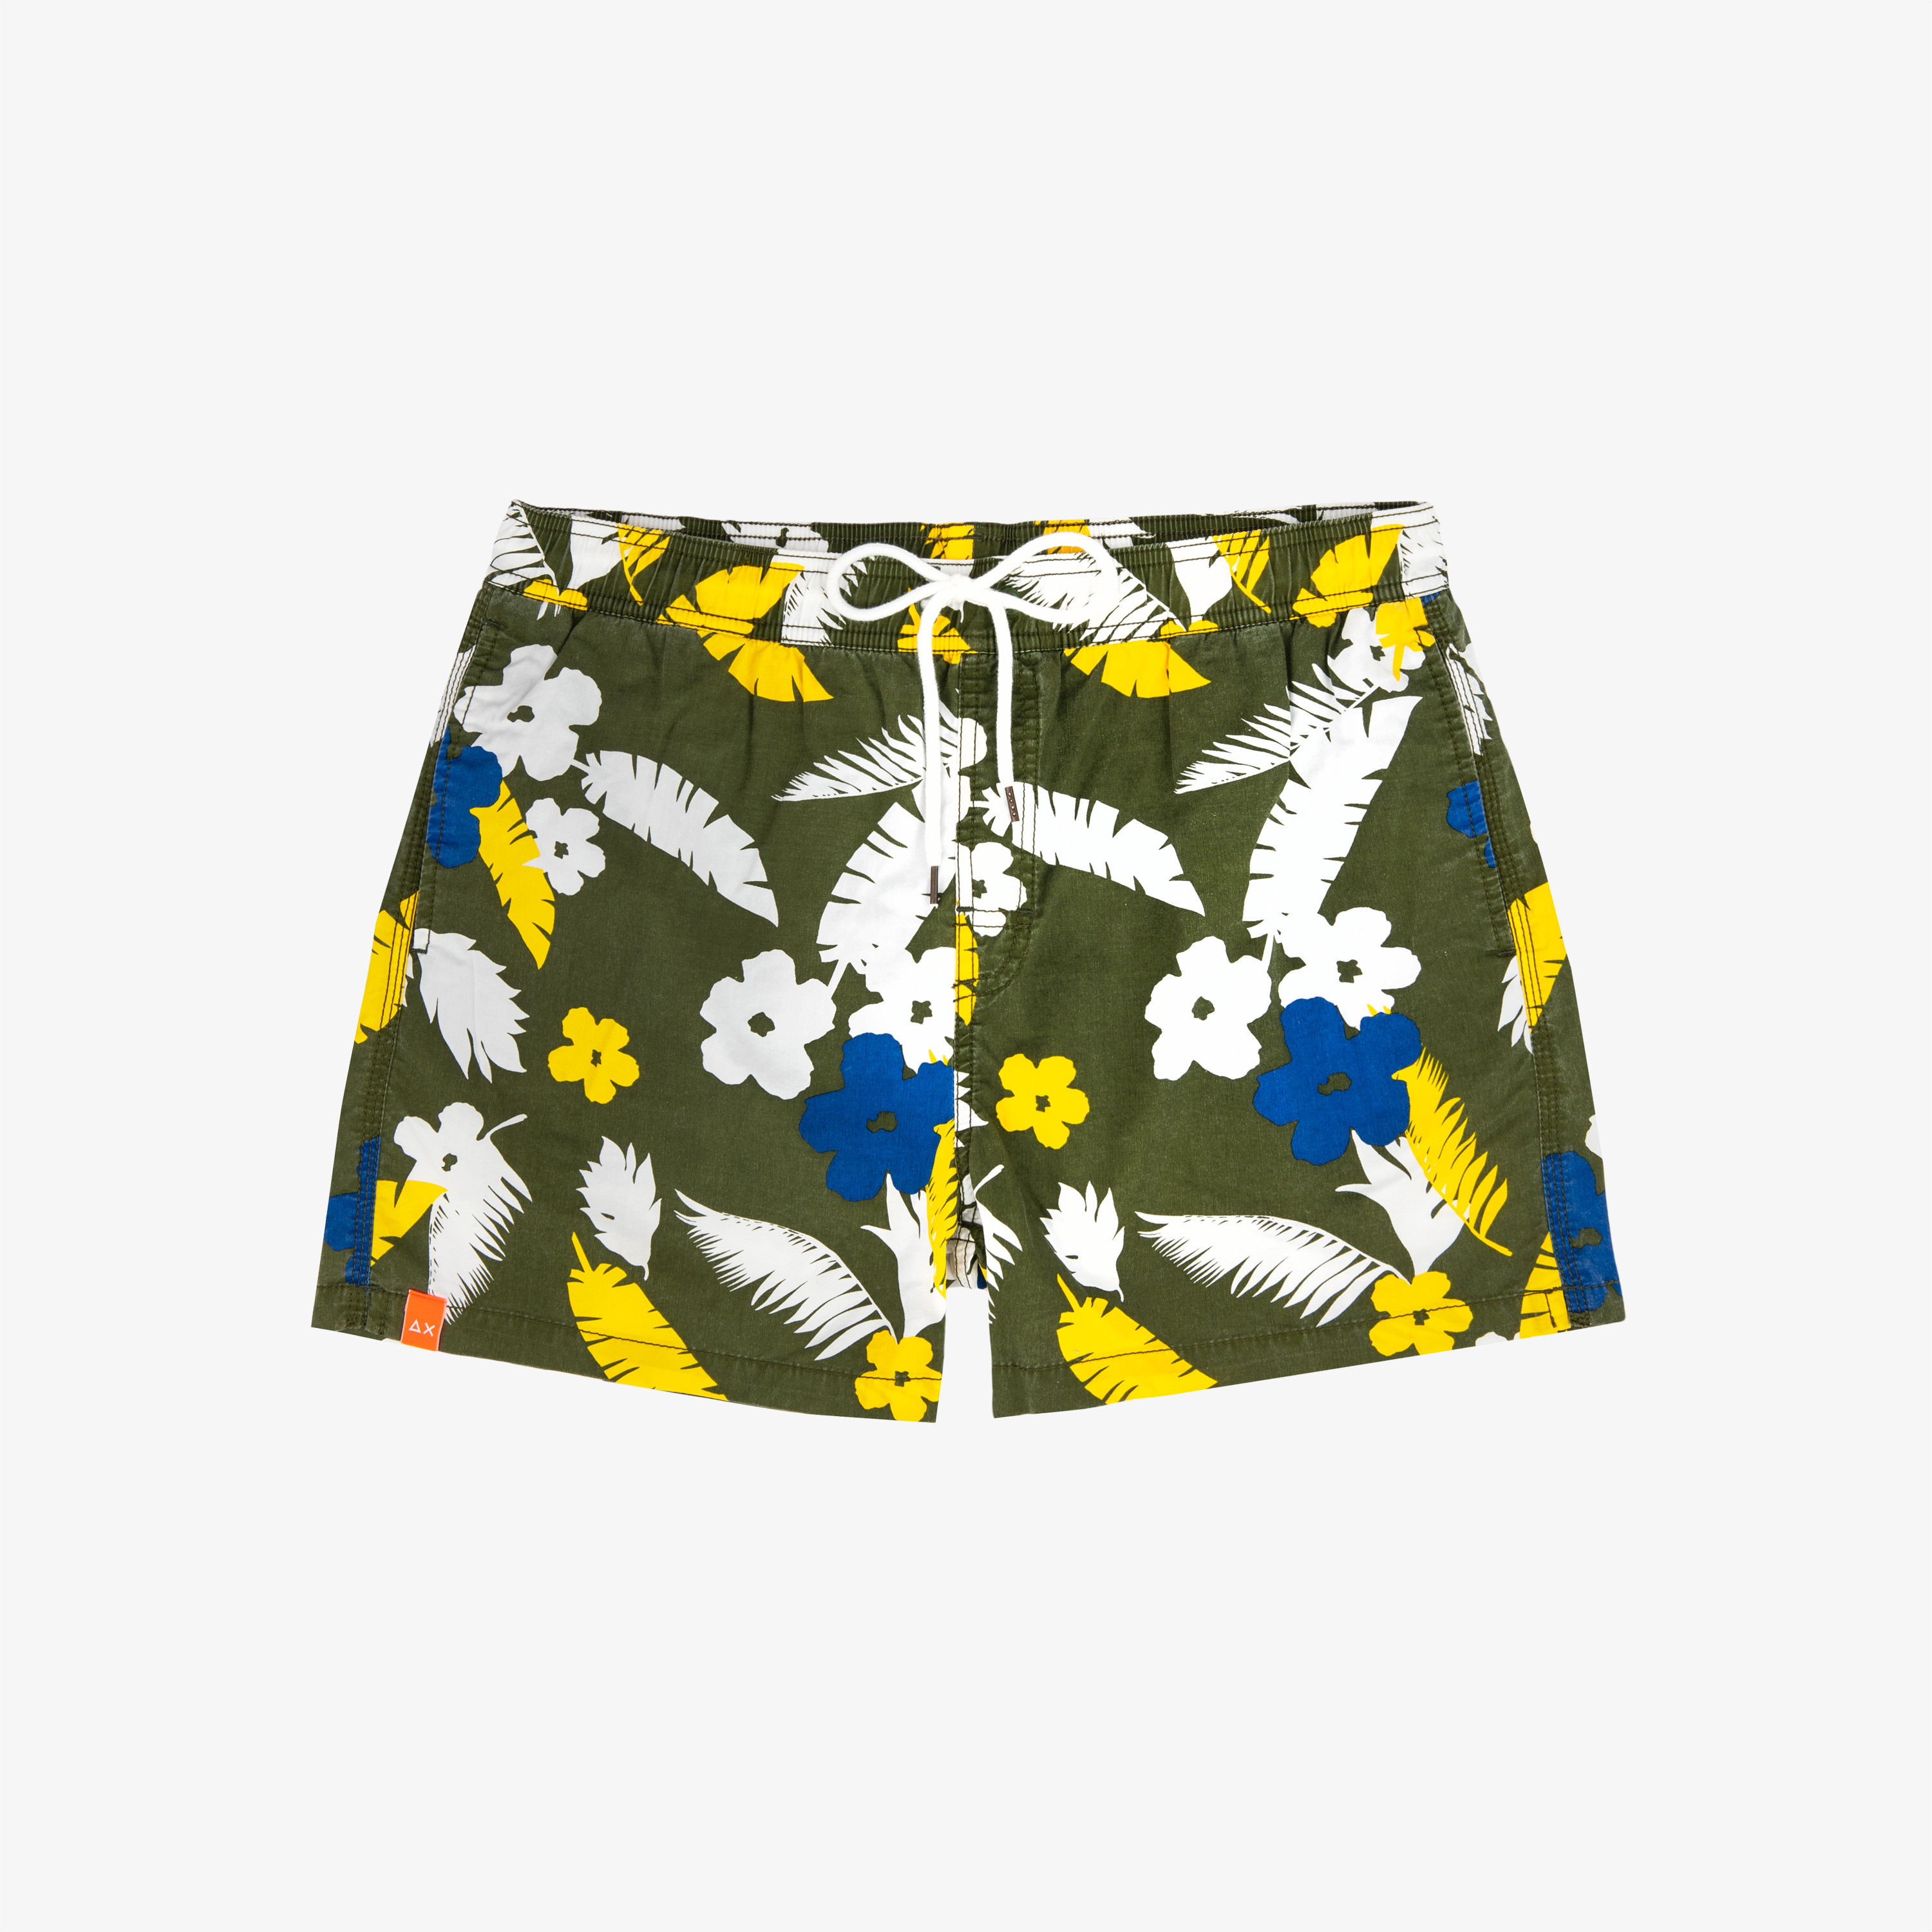 SWIM PANT CLASSIC PRINT MILITARY / YELLOW